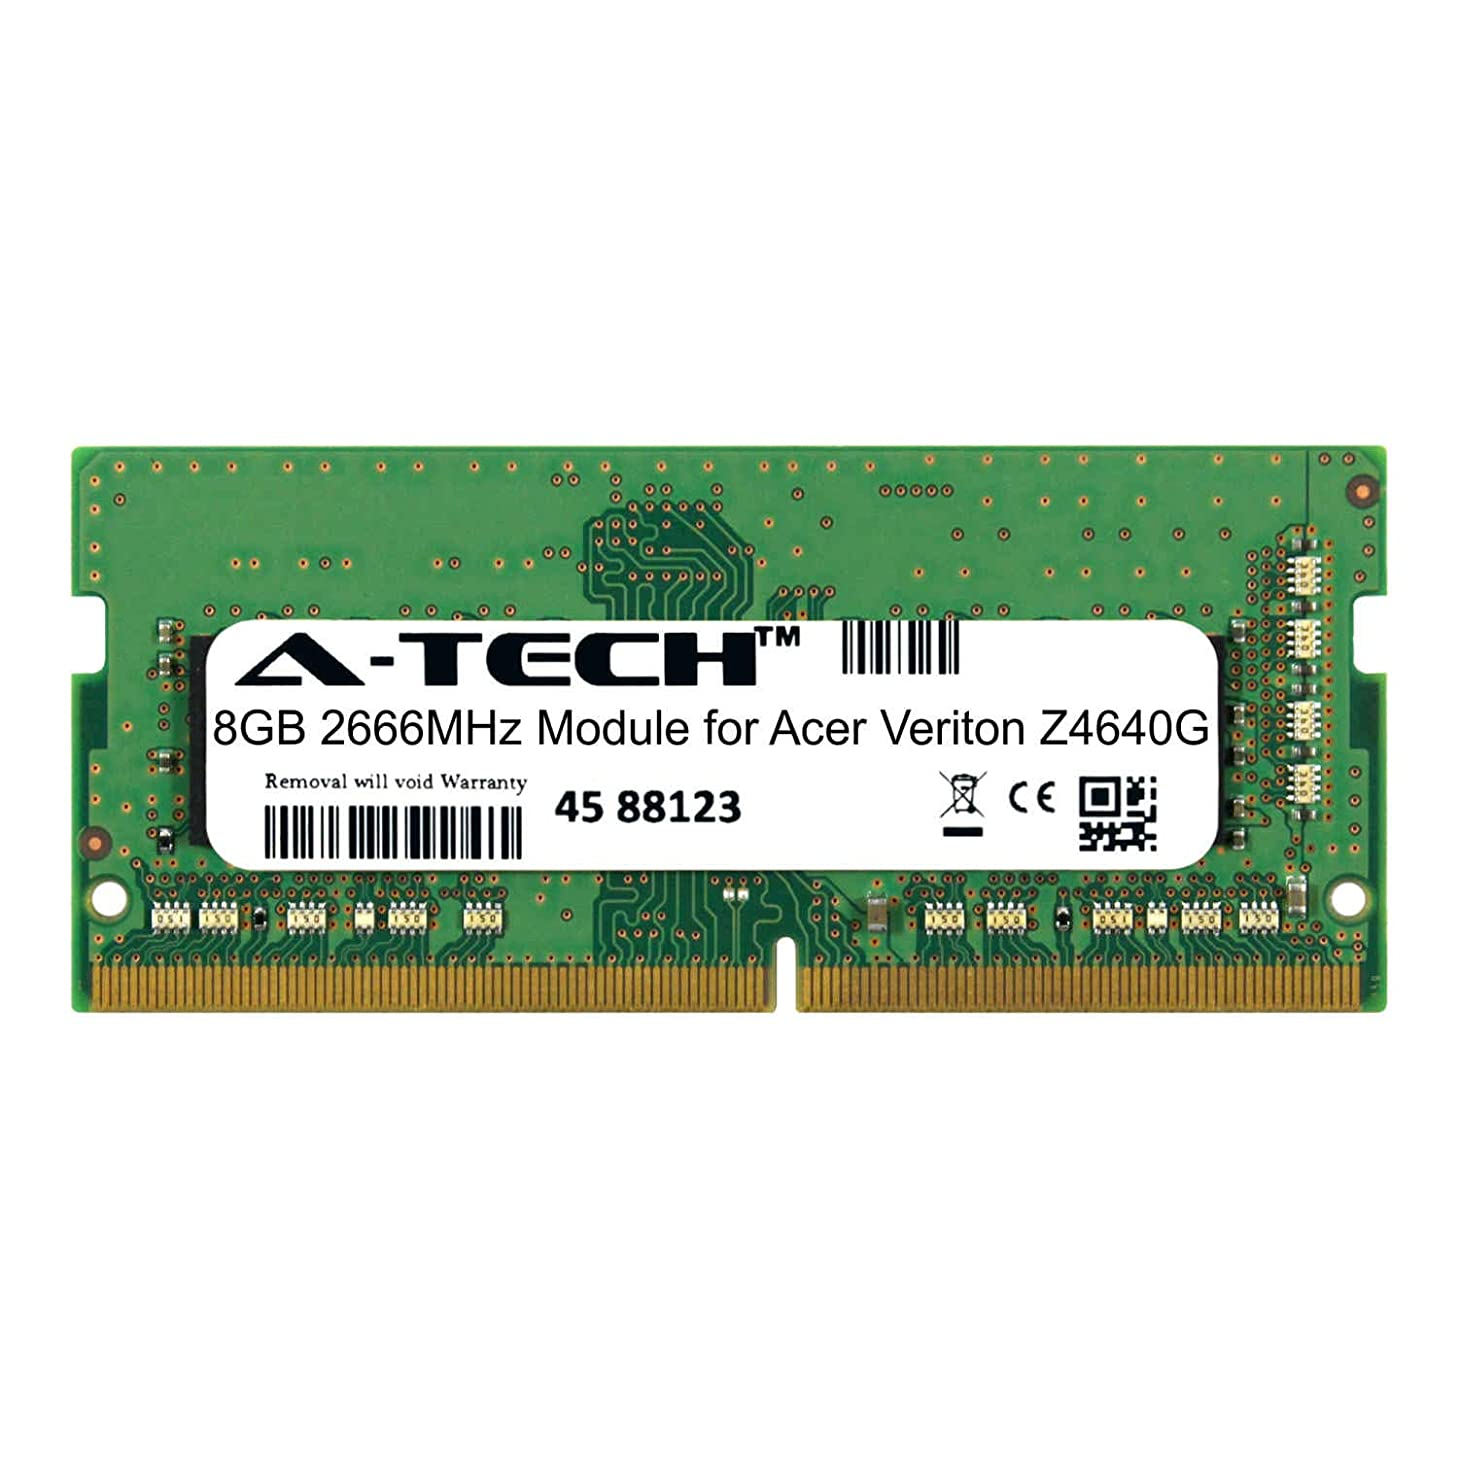 A-Tech 8GB Module for Acer Veriton Z4640G Laptop & Notebook Compatible DDR4 2666Mhz Memory Ram (ATMS360048A25978X1)